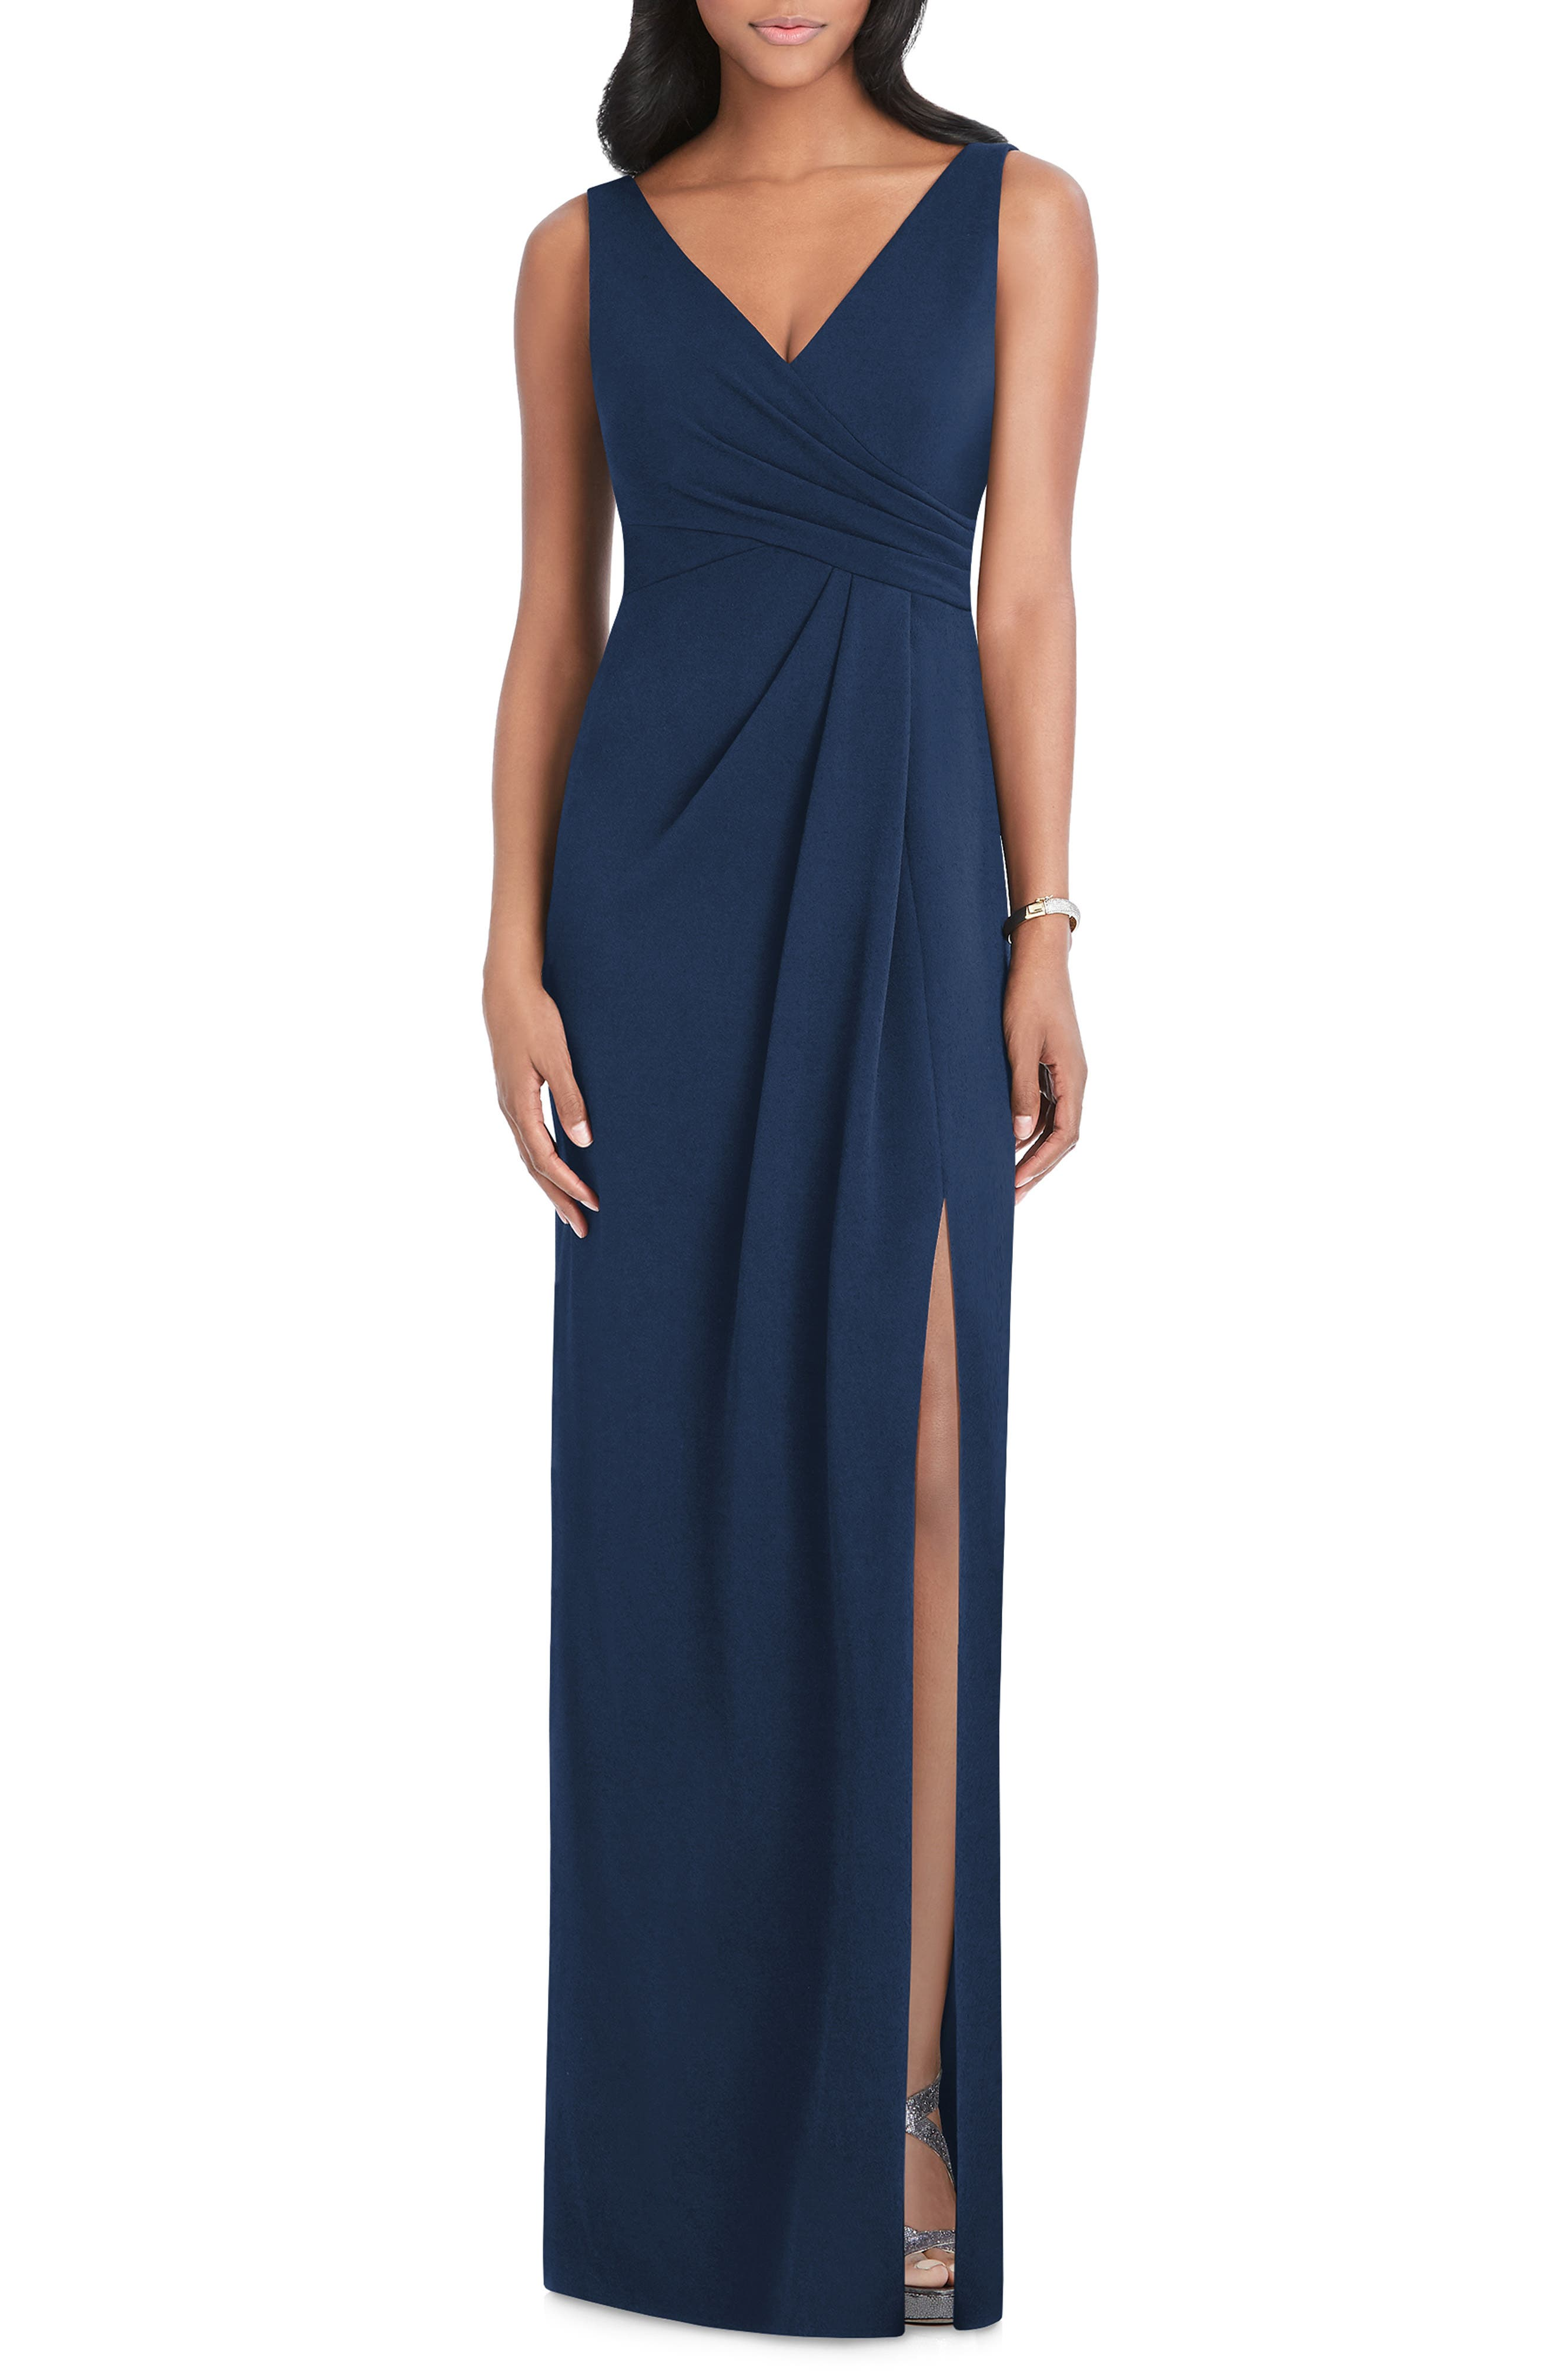 AFTER SIX, Pleated Surplice Stretch Crepe Gown, Main thumbnail 1, color, MIDNIGHT